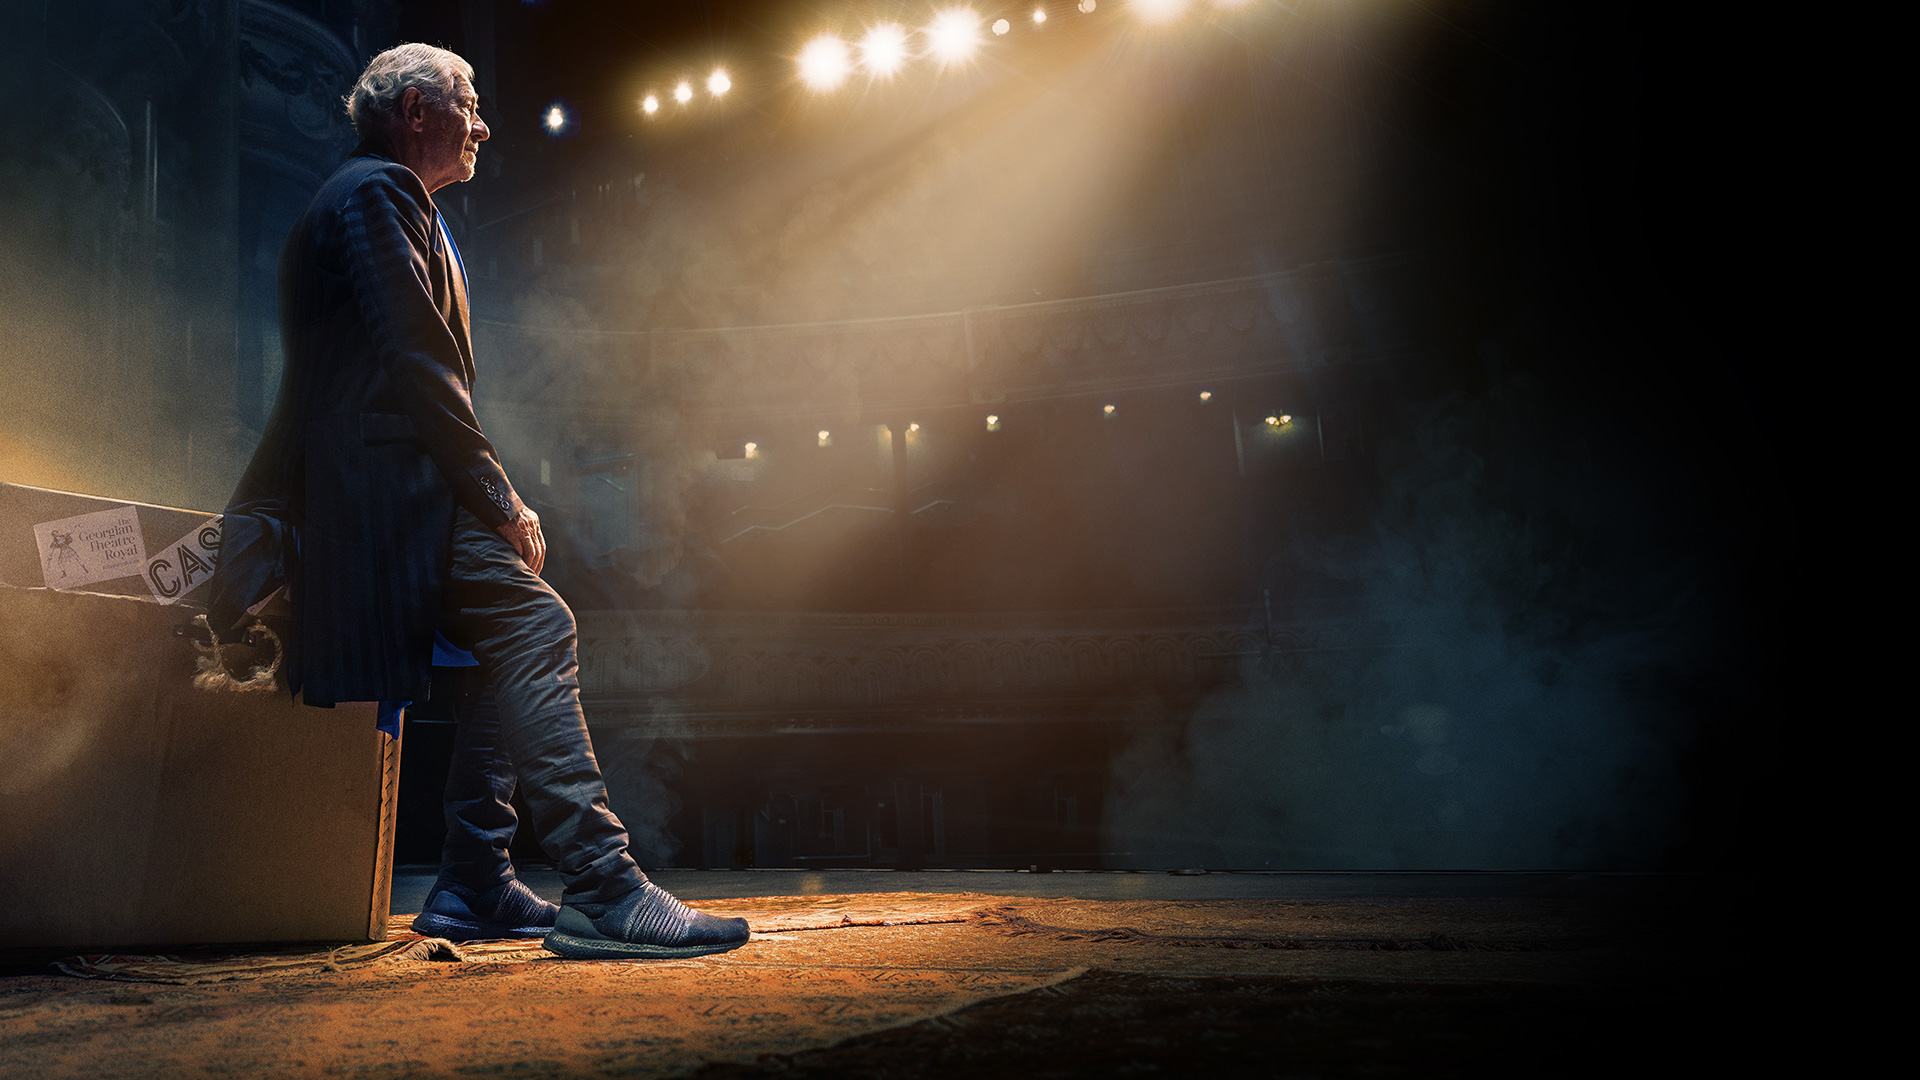 Production image for Ian Mckellen, featuring him on the stage